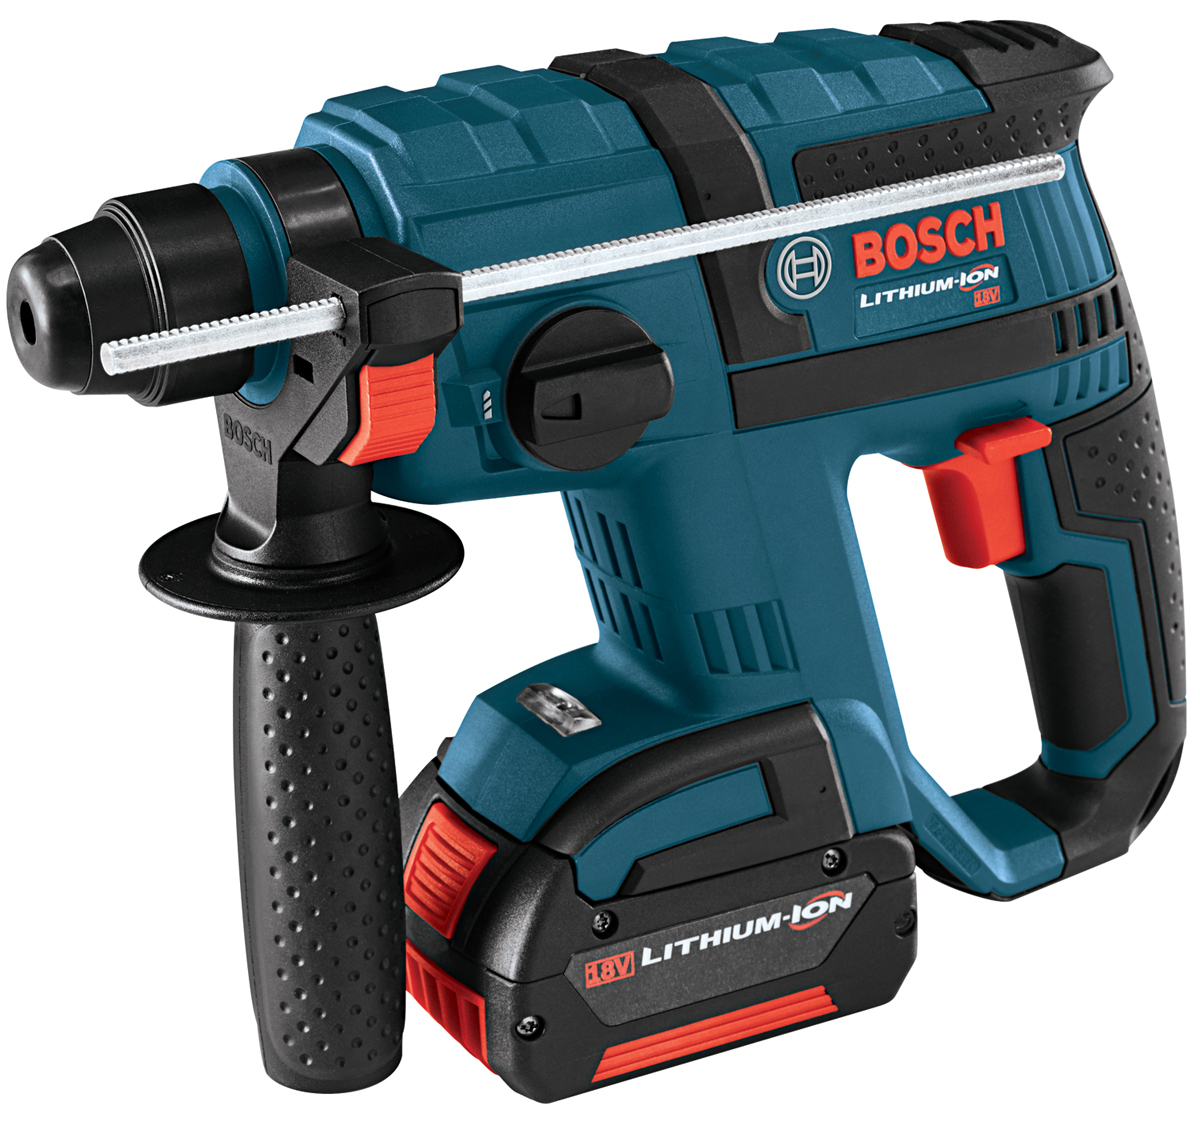 bosch rhh180 18v sds plusr rotary hammer offers unbeatable. Black Bedroom Furniture Sets. Home Design Ideas